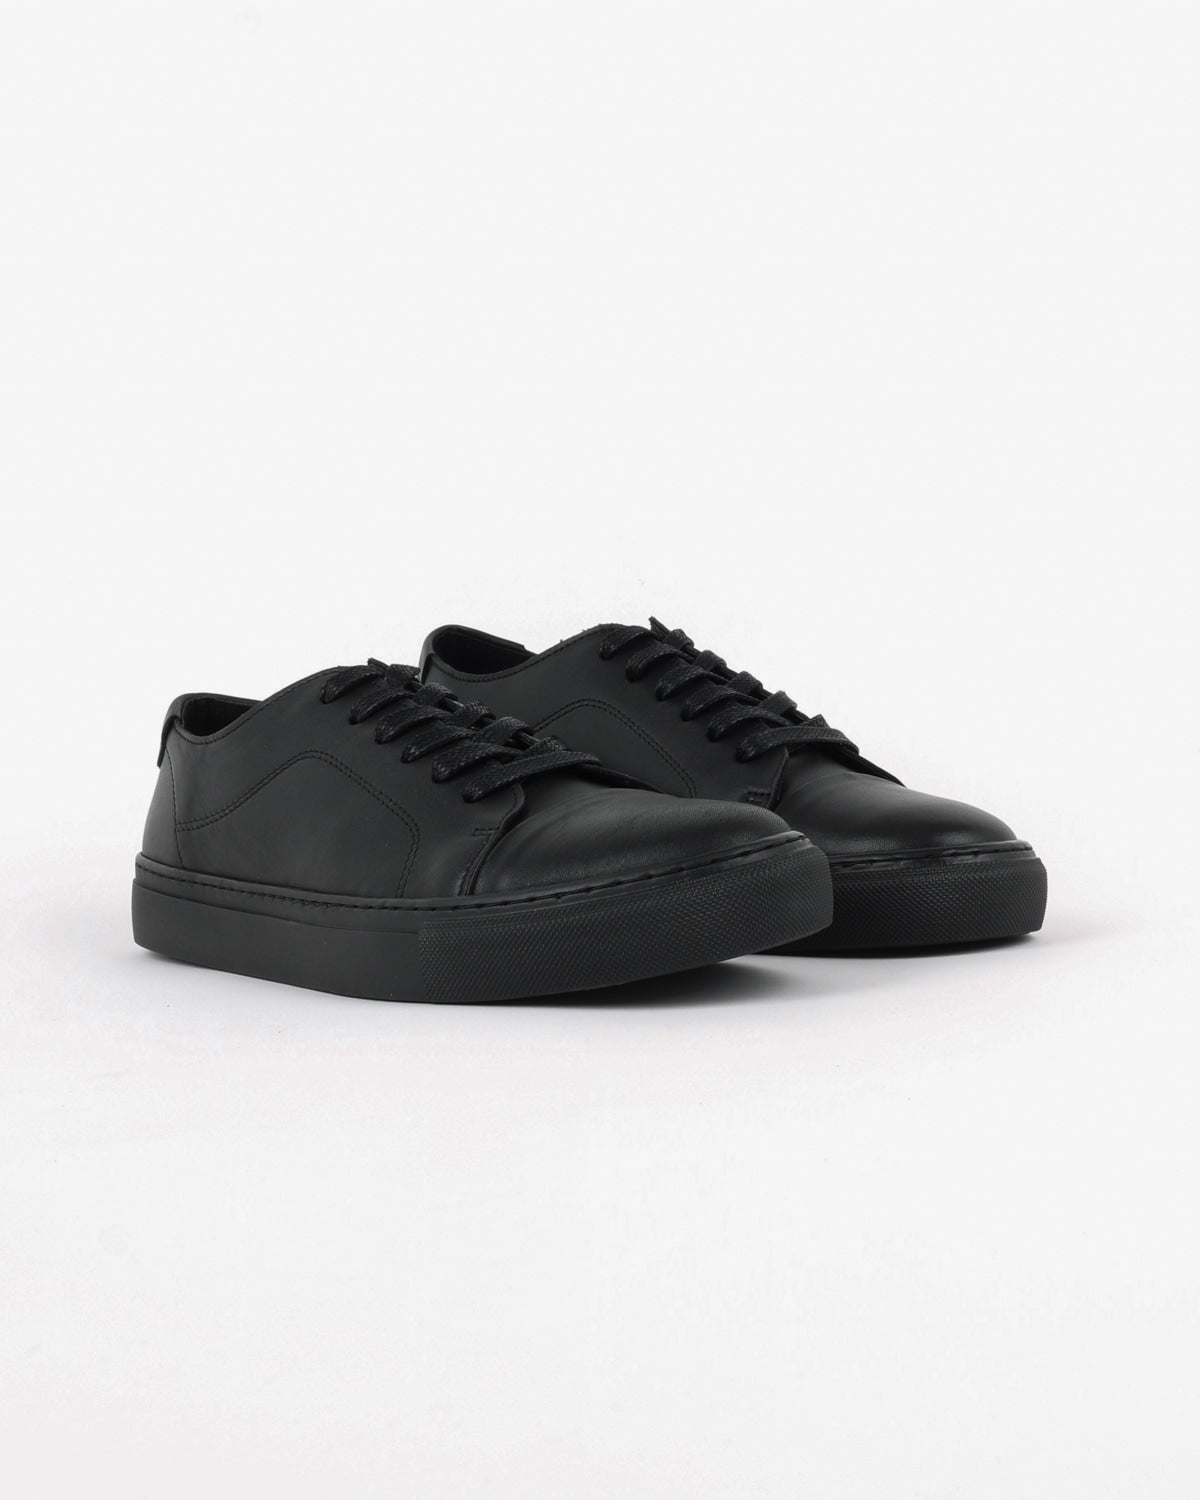 garment project_classic lace sneaker_black monochrome_view_2_4